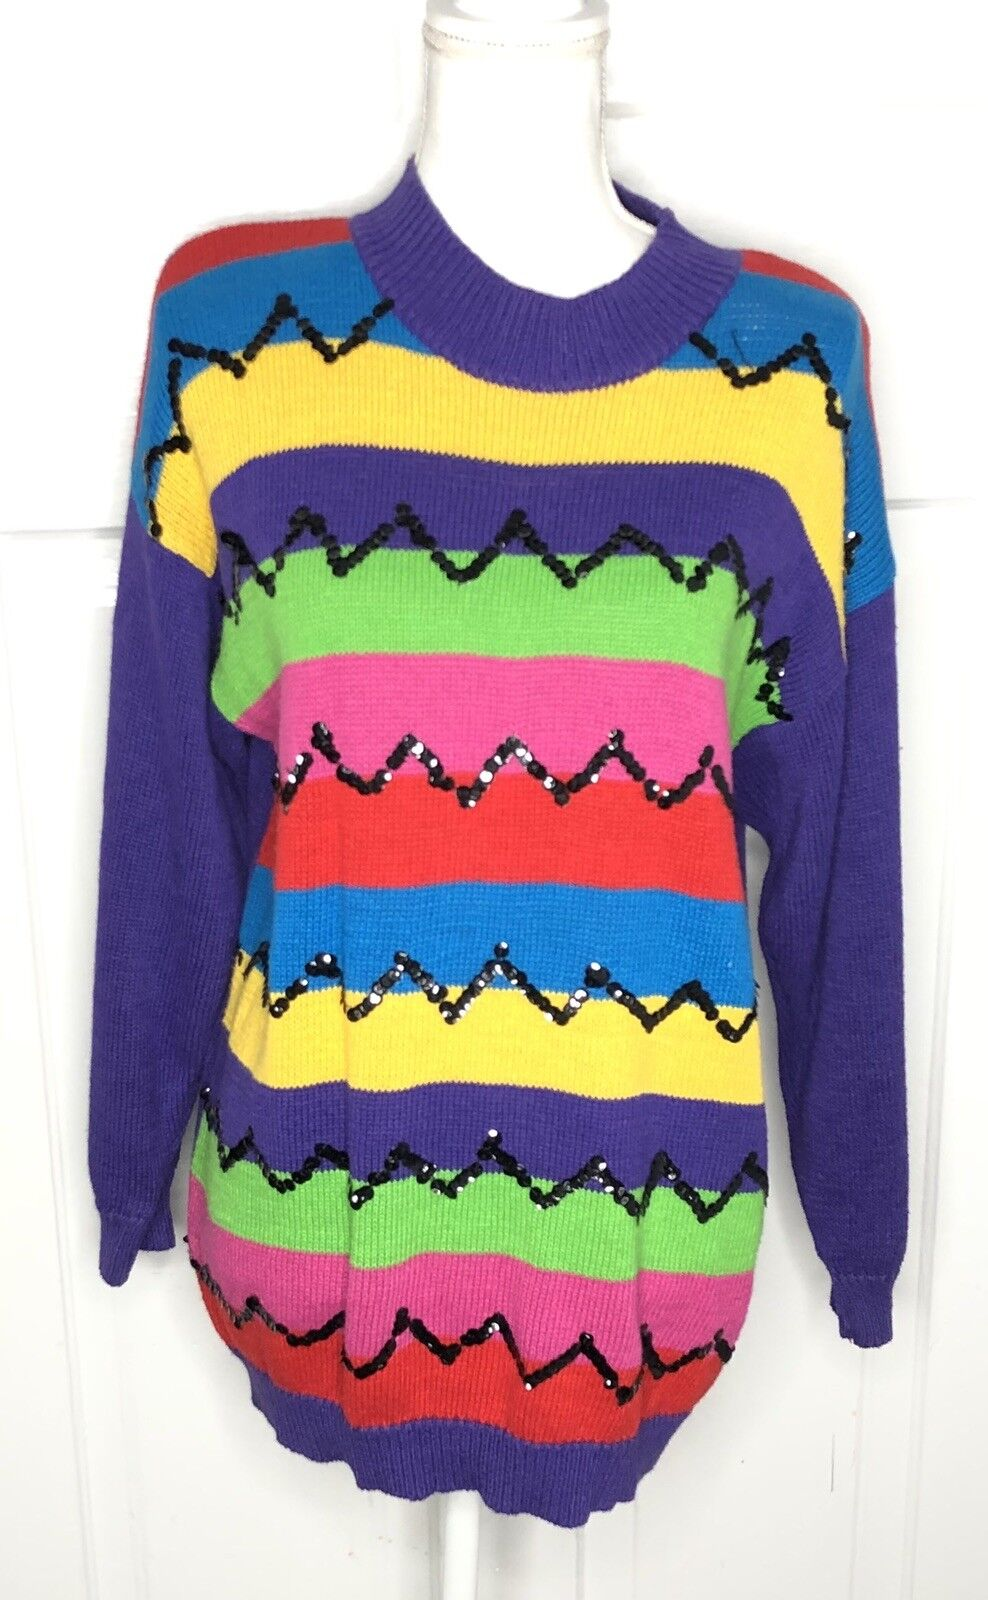 Vintage women Small knit sweater Tunic colorful sequin 1980s 1990s Oversized